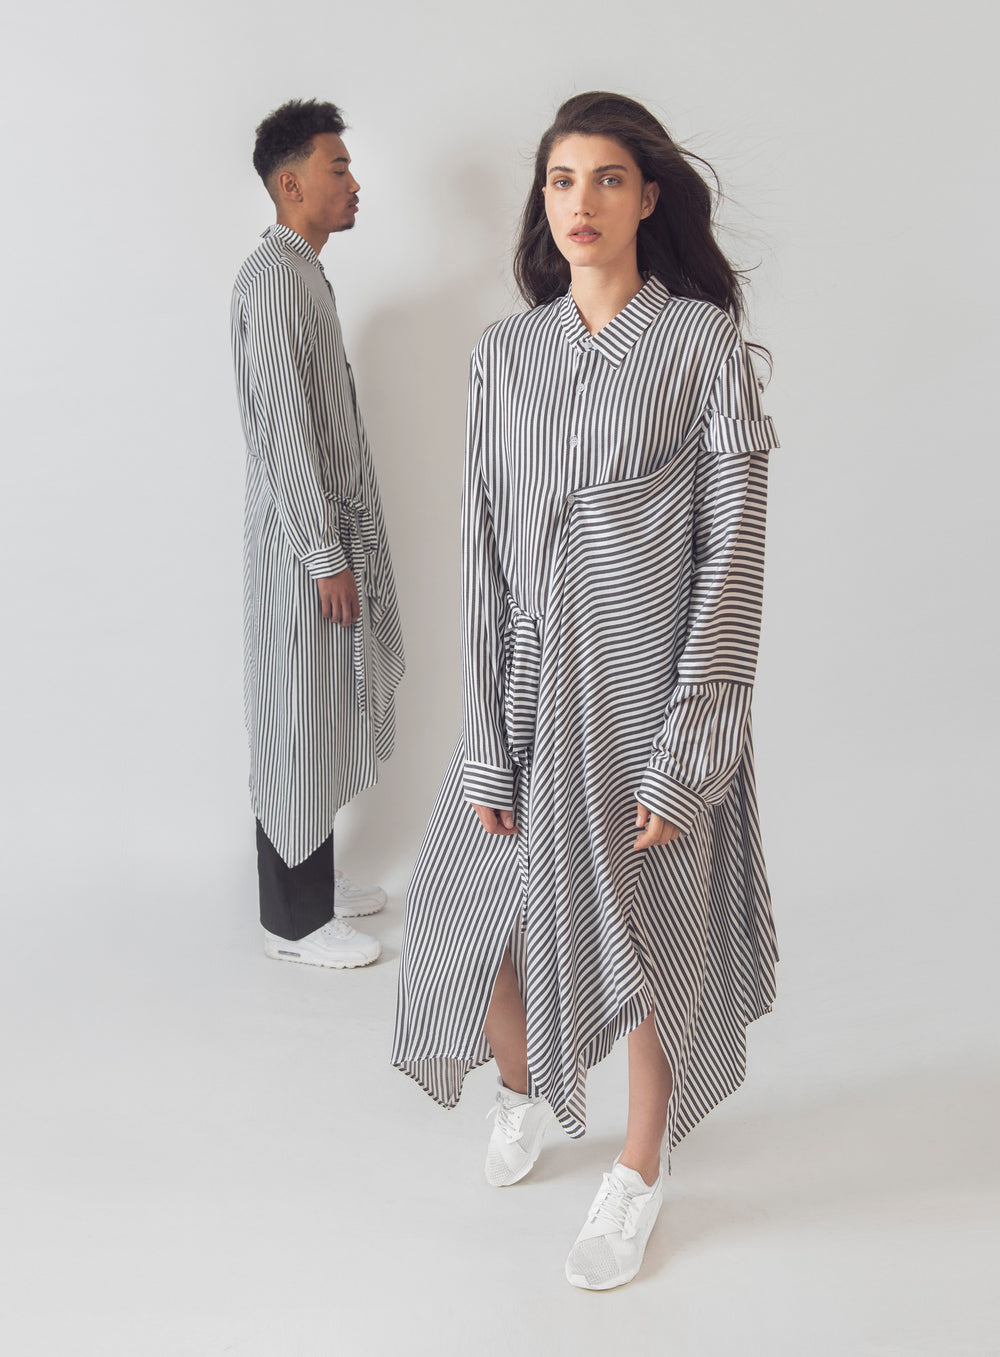 Pinstripe Dress // Unisex